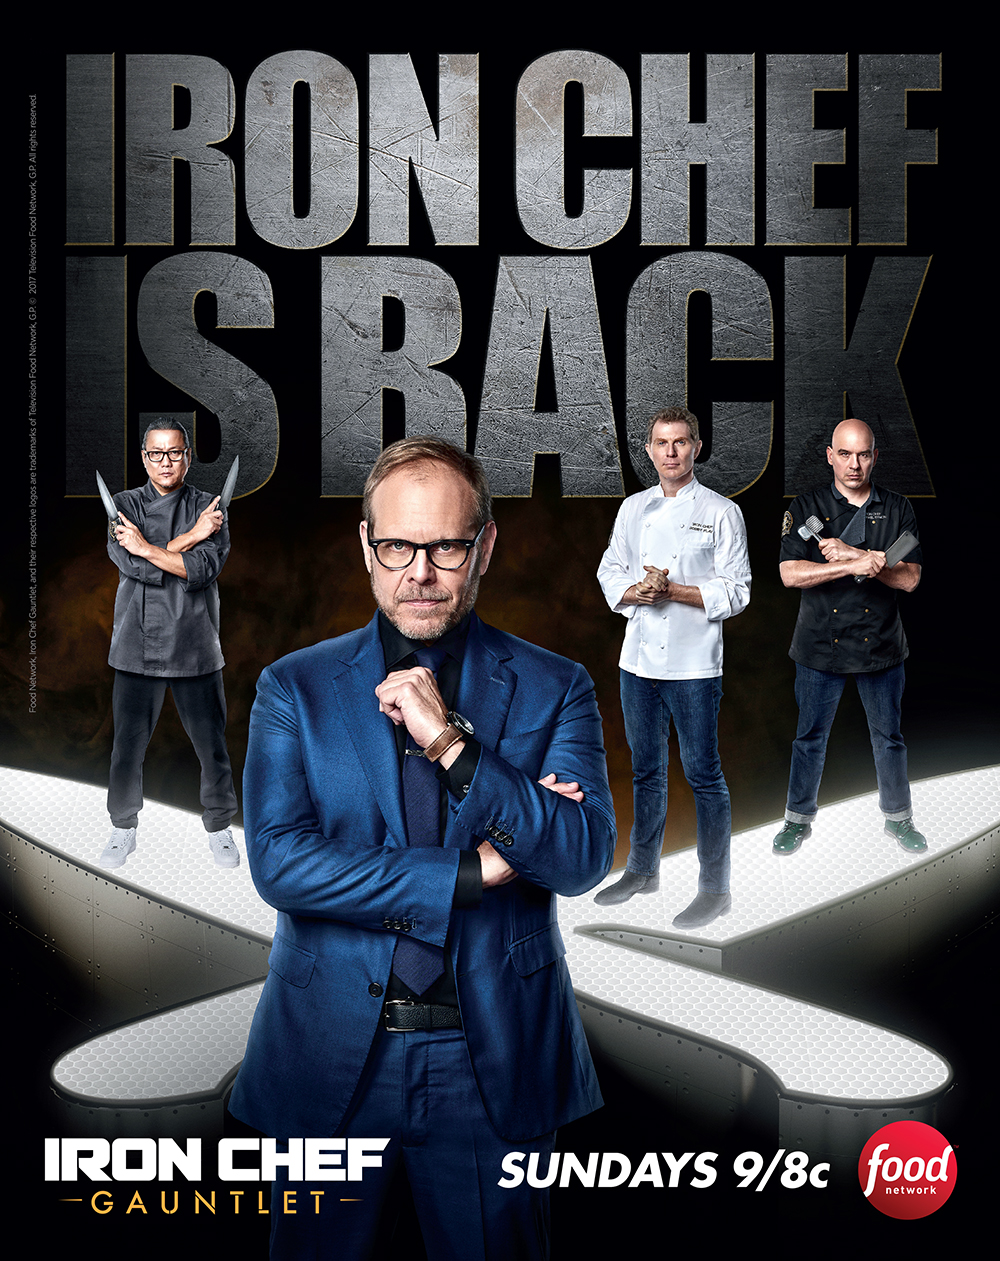 IronChef_FoodNetworkMag_v2.indd